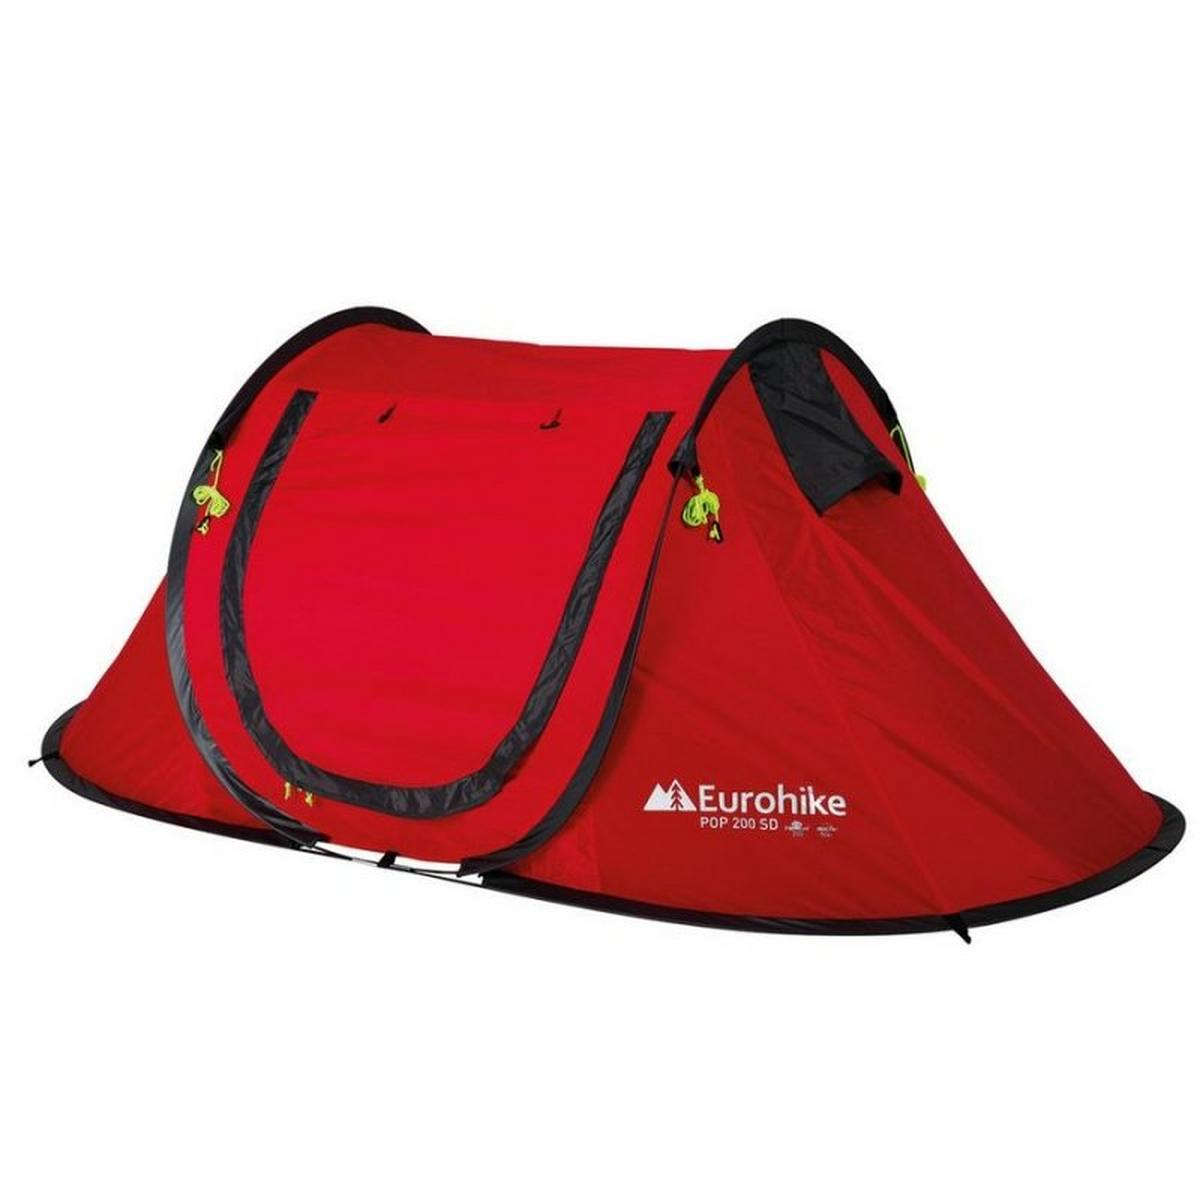 Eurohike Pop 200 SD Pop-Up | Two Person Tent